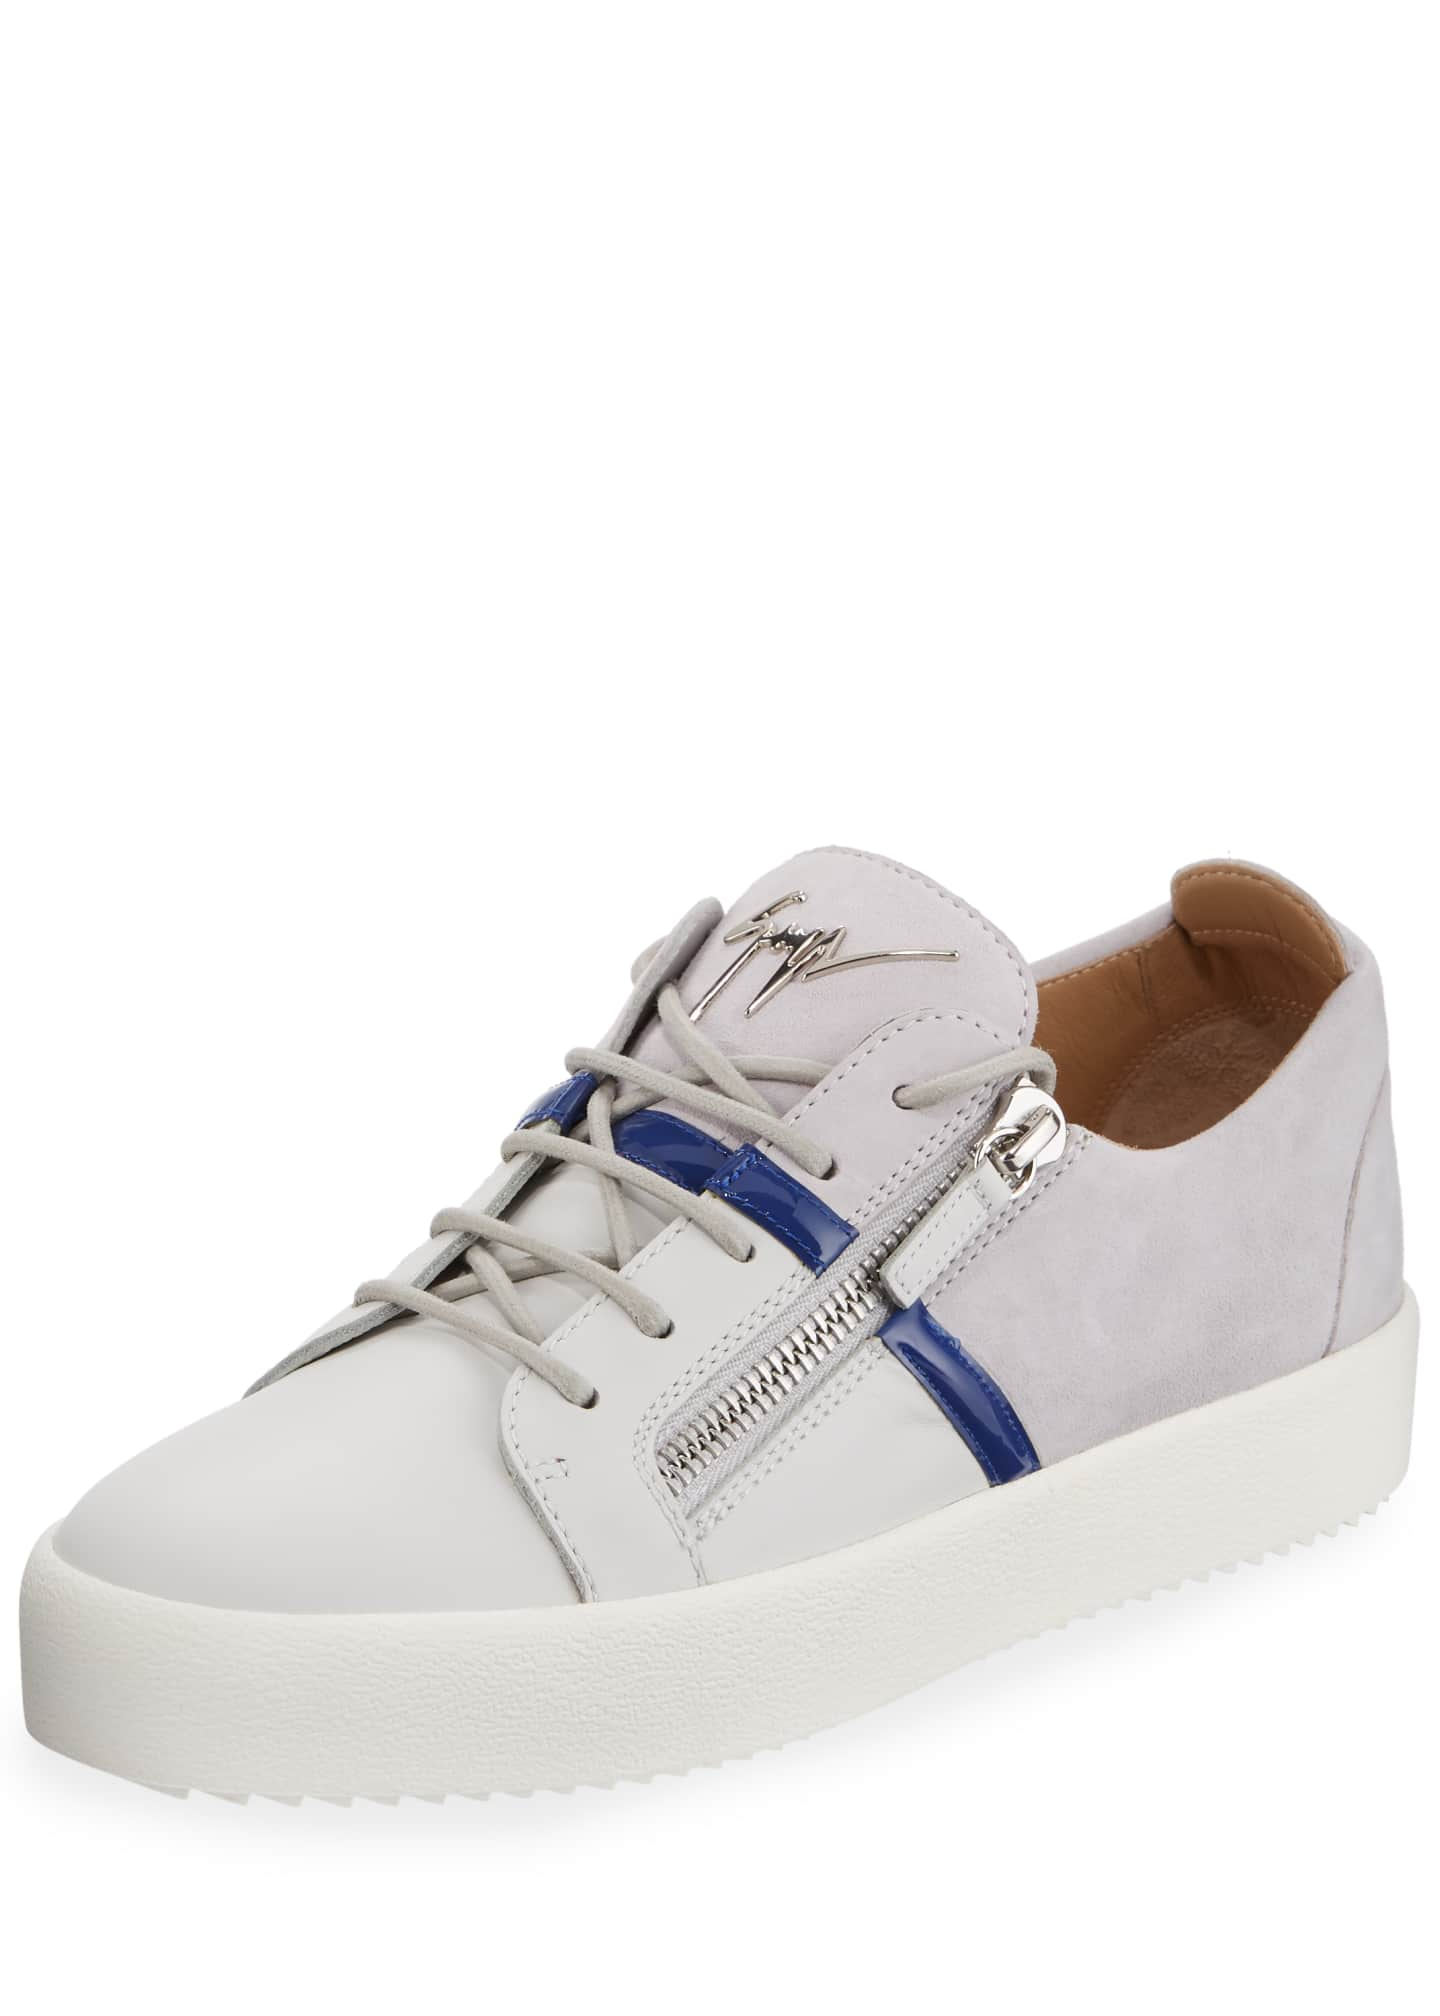 Giuseppe Zanotti Men's Mixed-Media Double-Zip Low-Top Sneakers